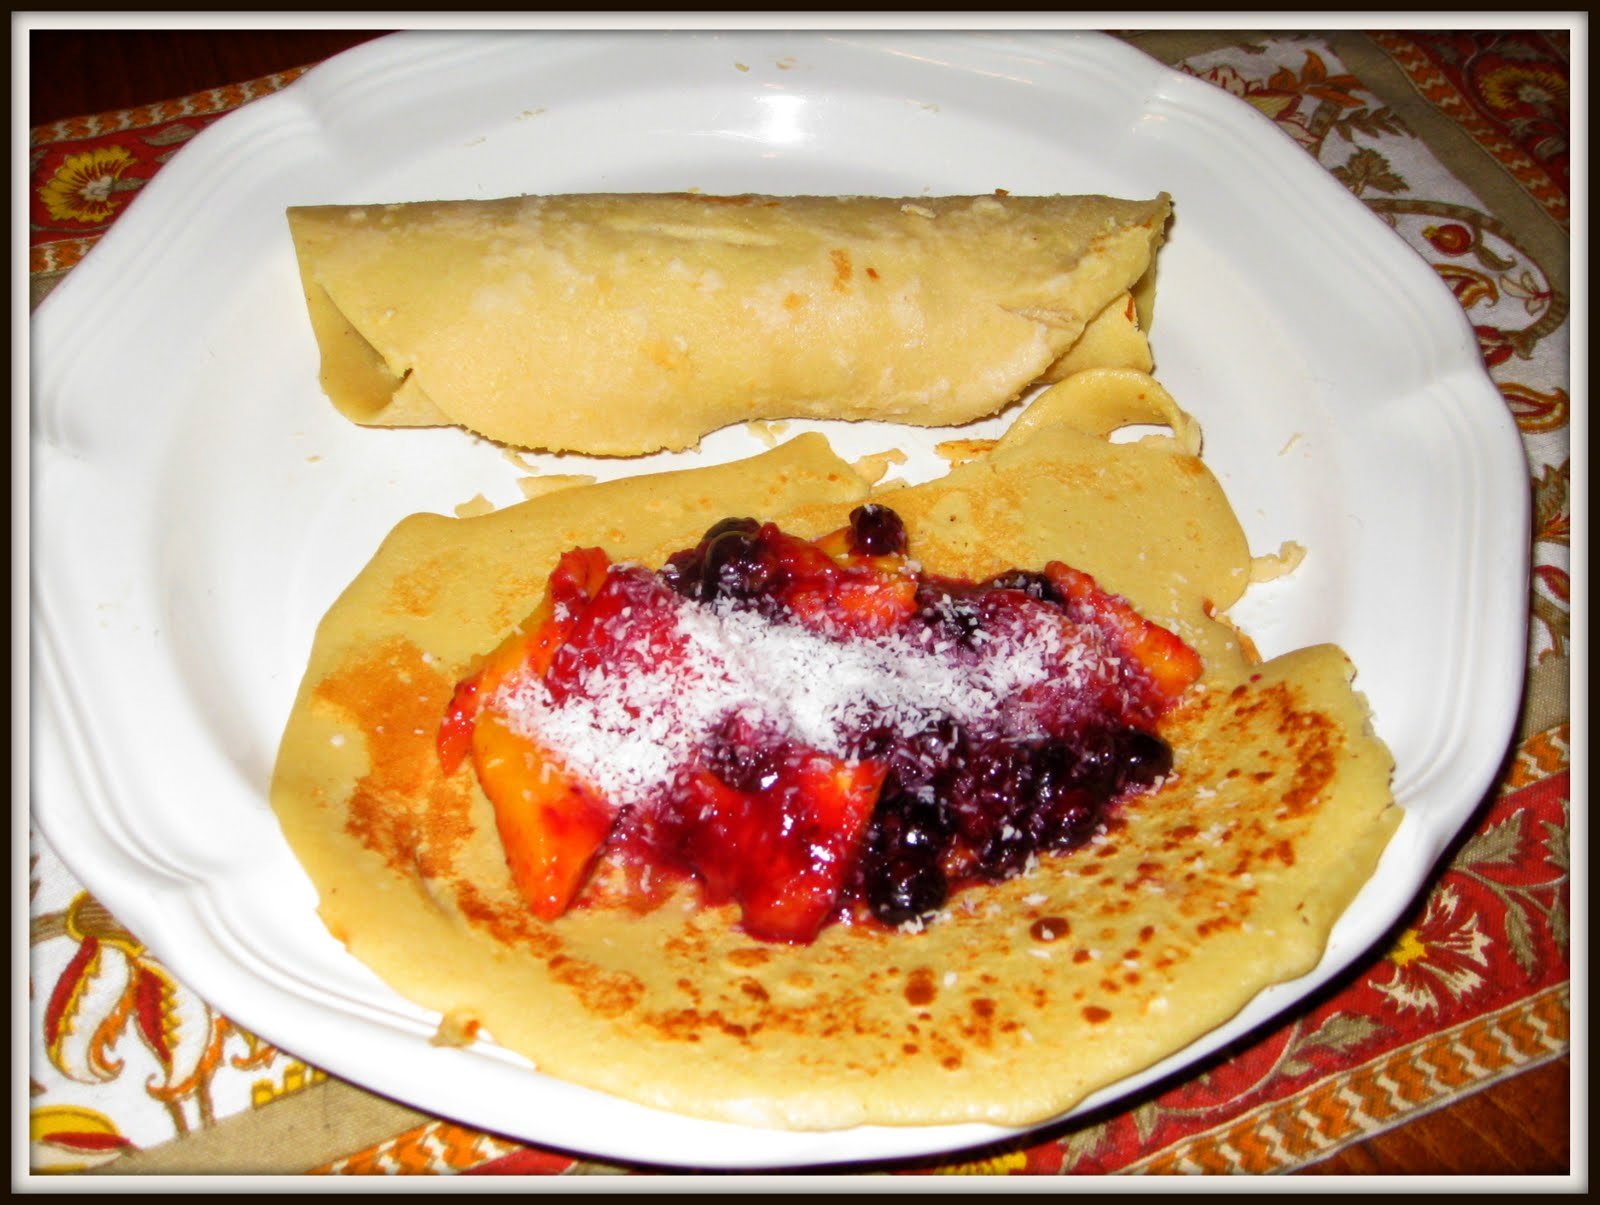 CHOCOLATE & CROISSANTS: Tahitian Mango Coconut Blueberry Crepe